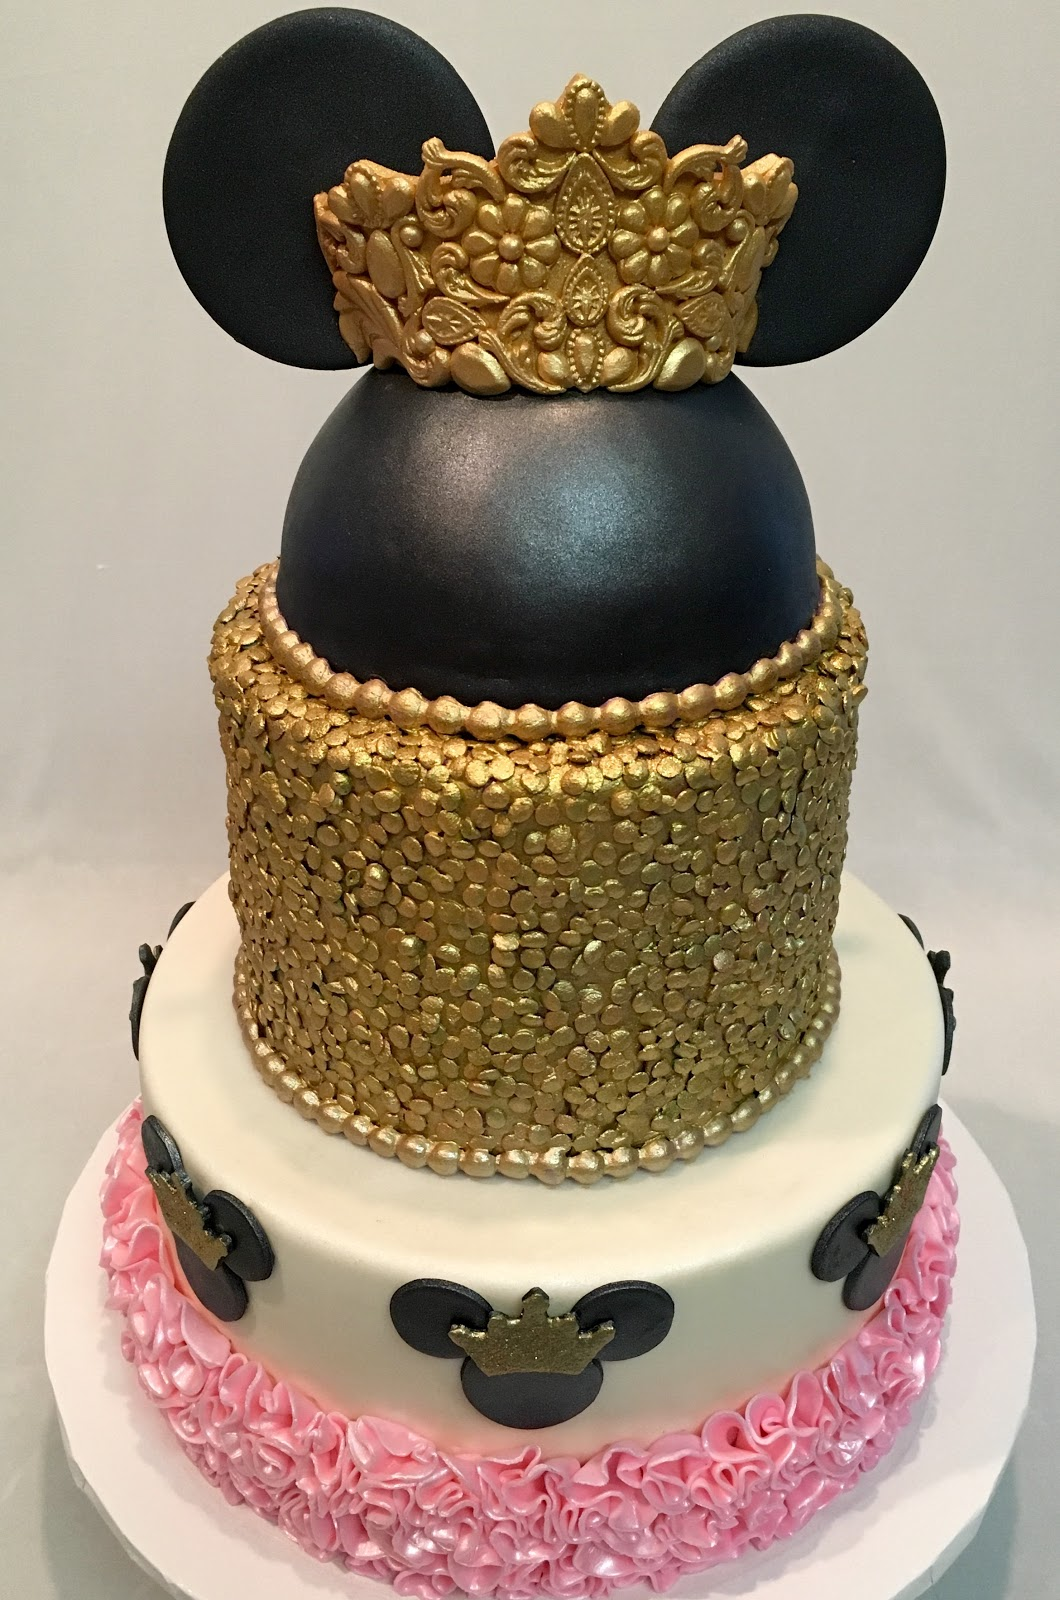 Mymonicakes Princess Minnie Mouse Cake With Tiara Gold